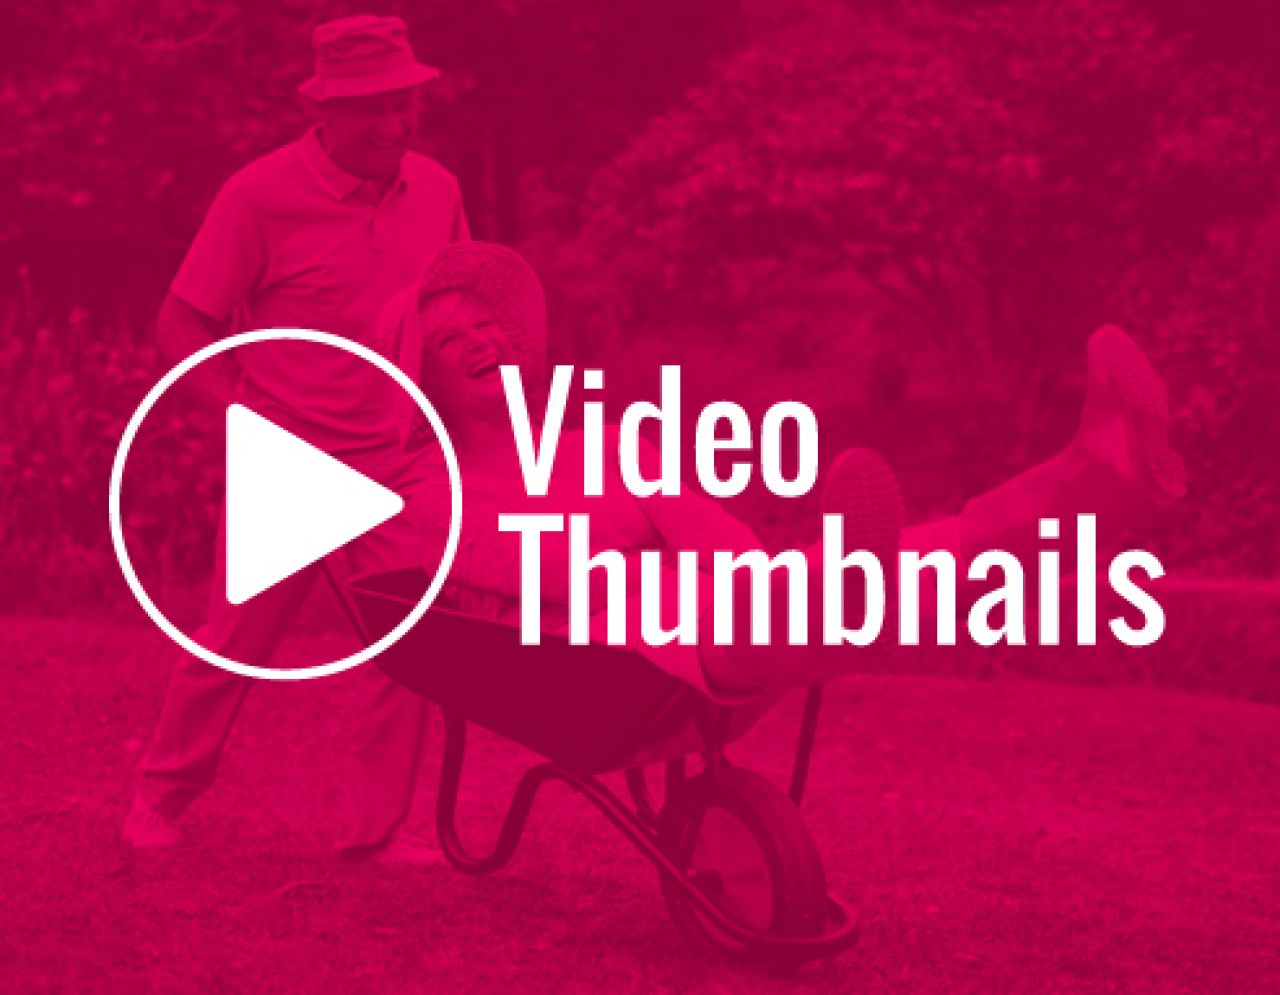 Video Thumbnails to Increase Click Rates